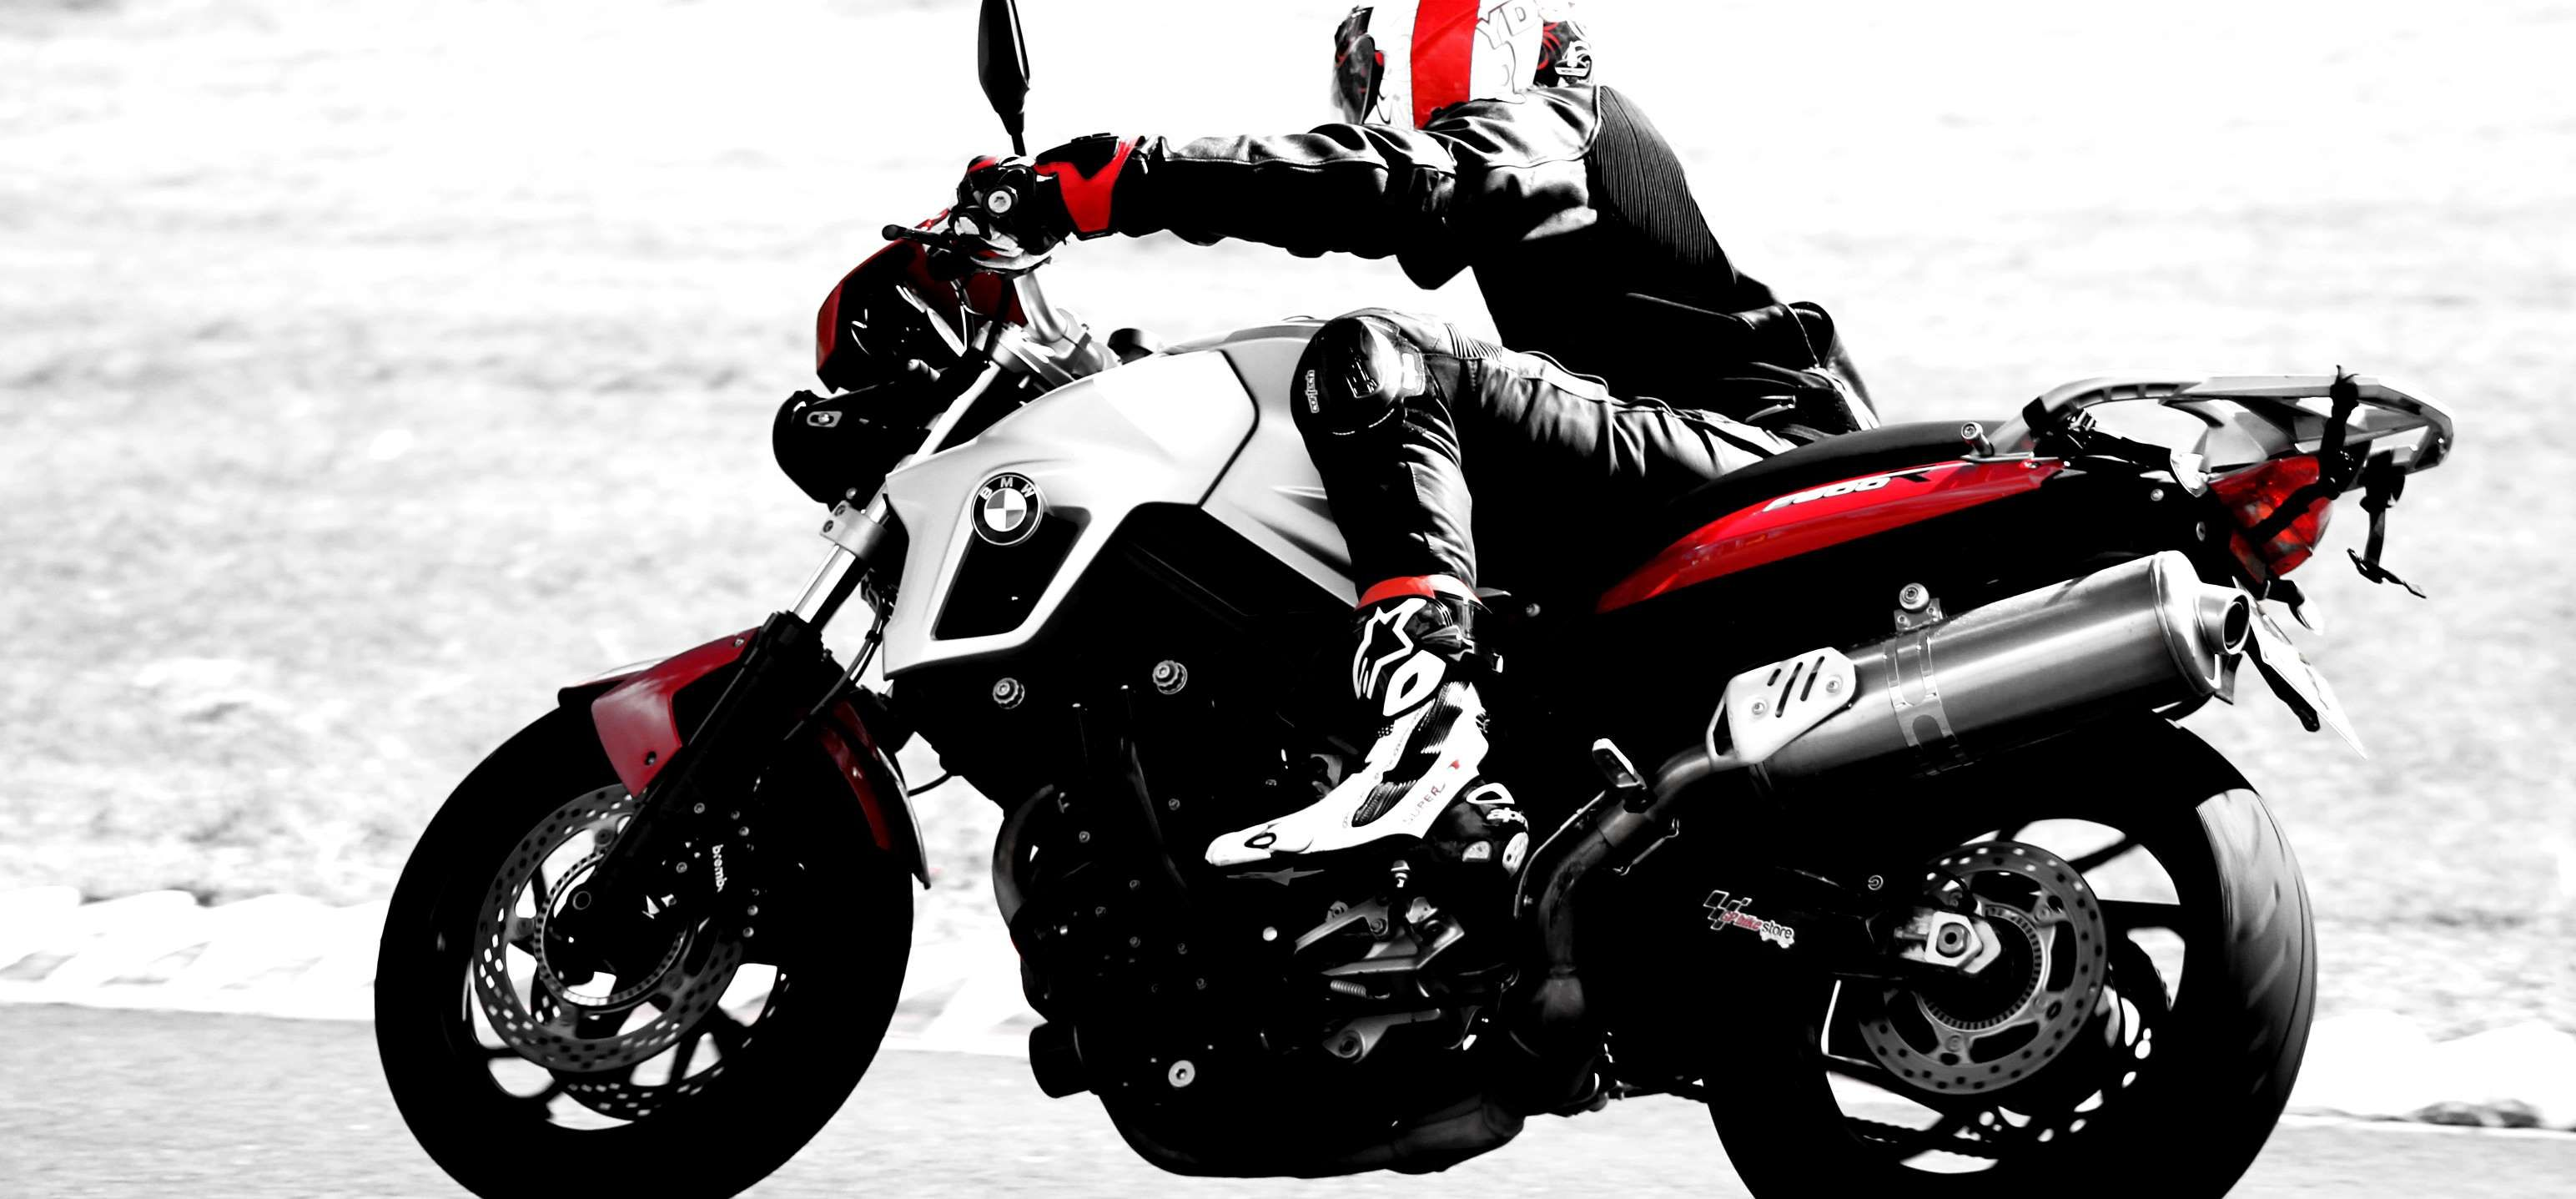 Alpinestars Bmw Colombia F800r Motorcycle Racetrack Speed